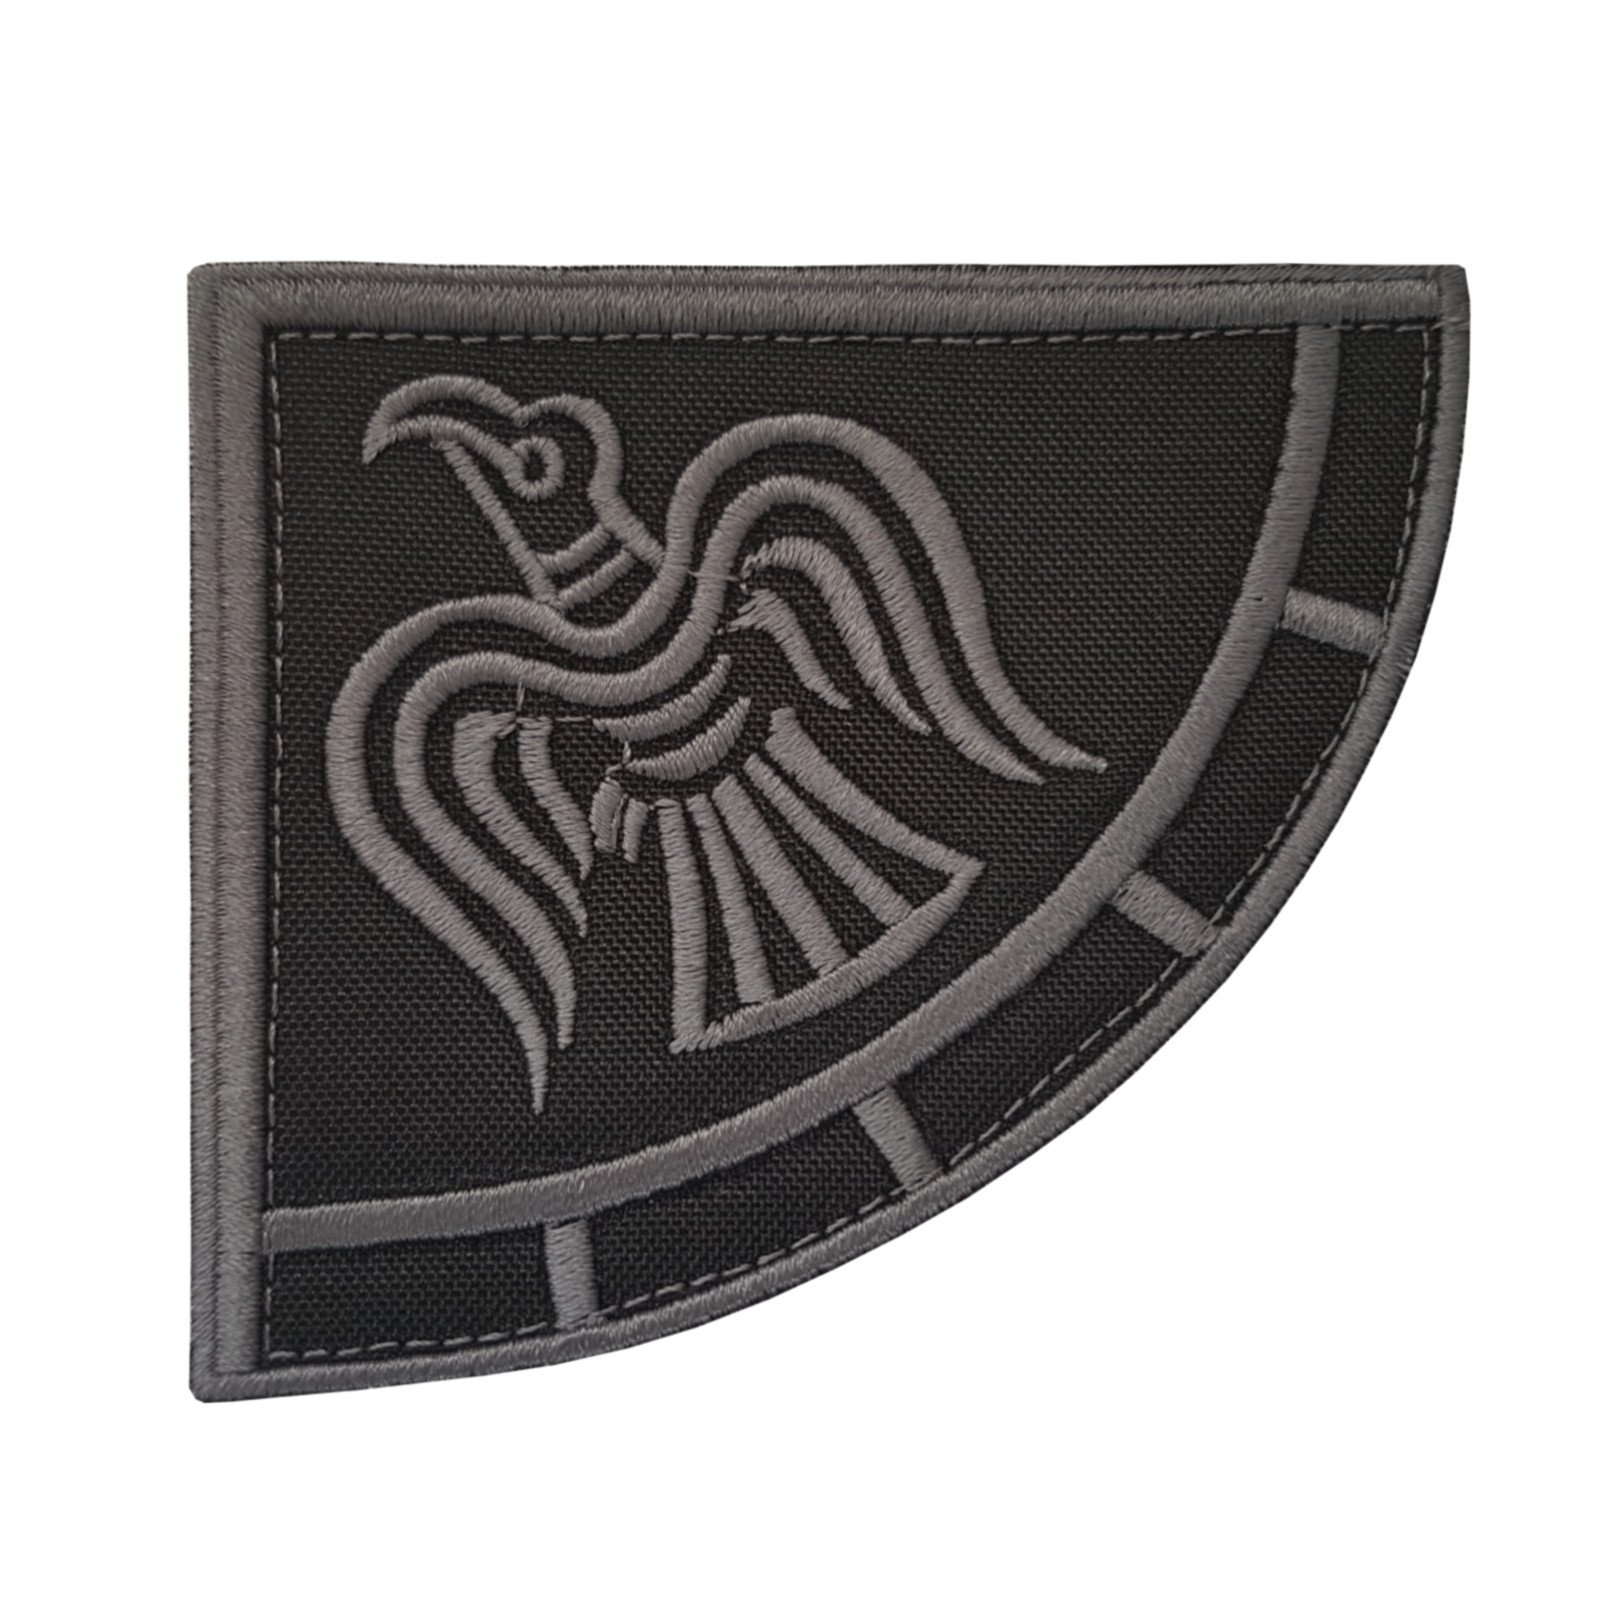 Glow Dark Rare Norse Viking Raven Runes Odin God of War Morale PVC Rubber 3D Touch Fastener Patch